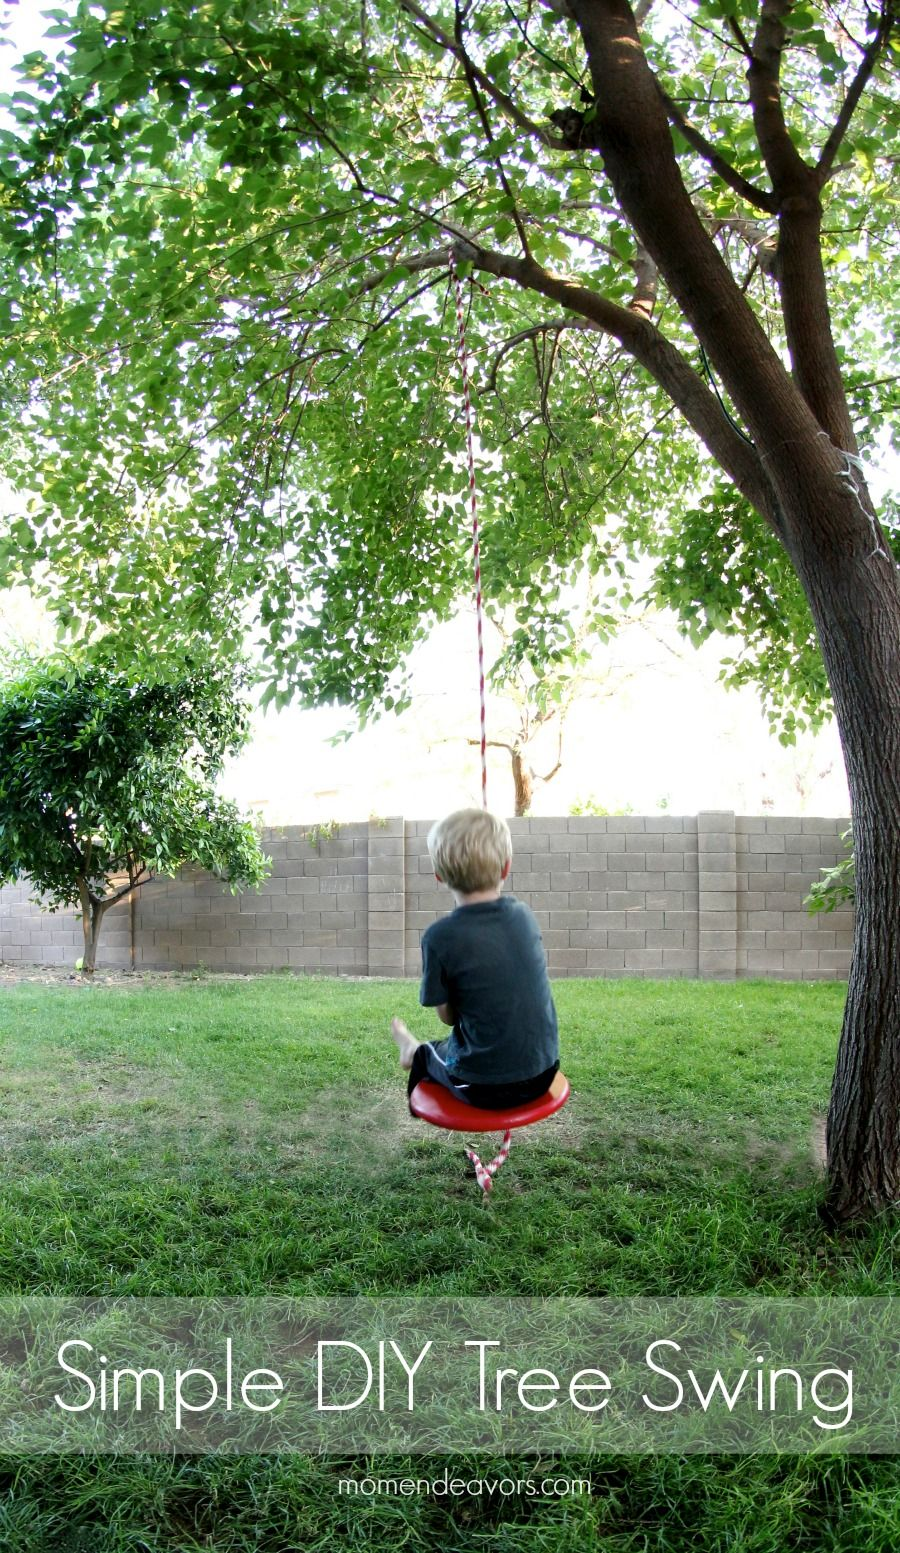 Simple DIY Tree Swing - Mom Endeavors